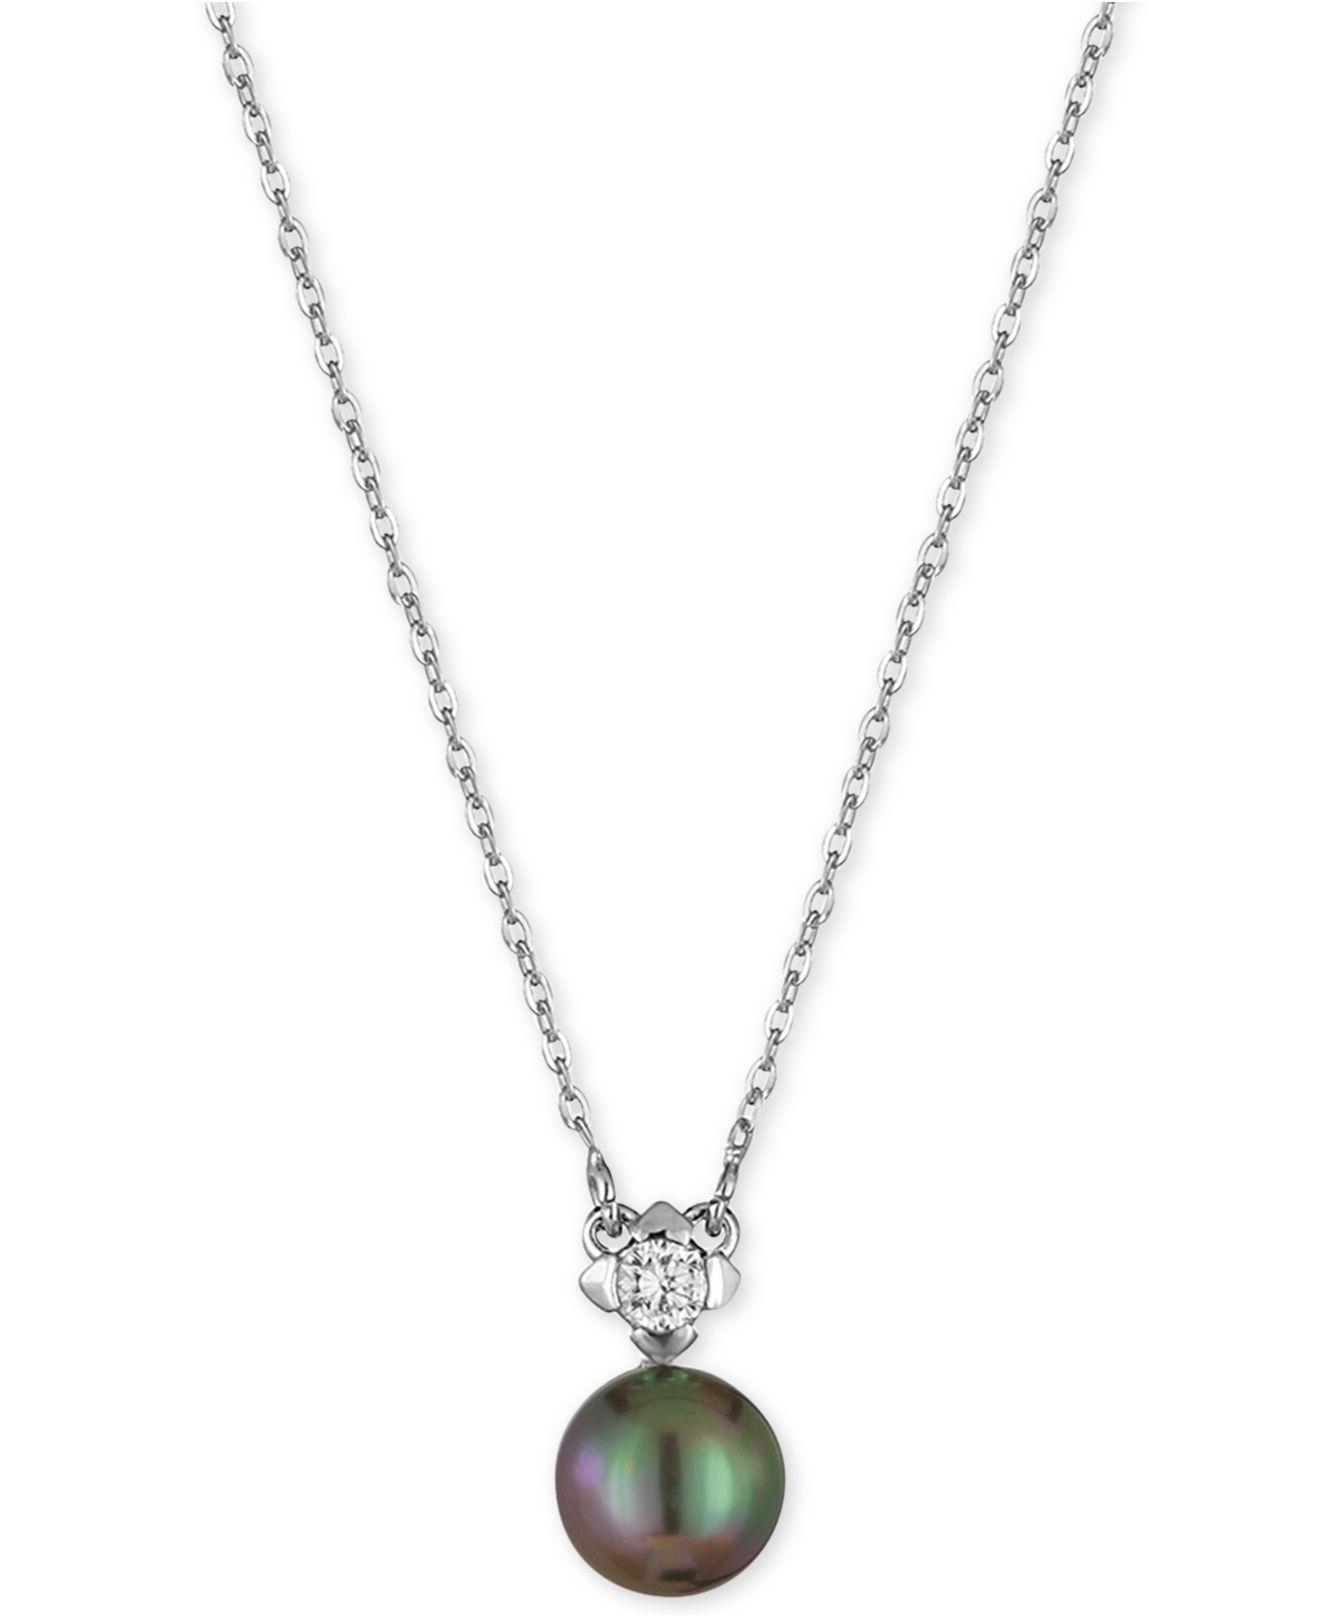 Majorica Pearl & Crystal Pendant Necklace vqPg4moiH